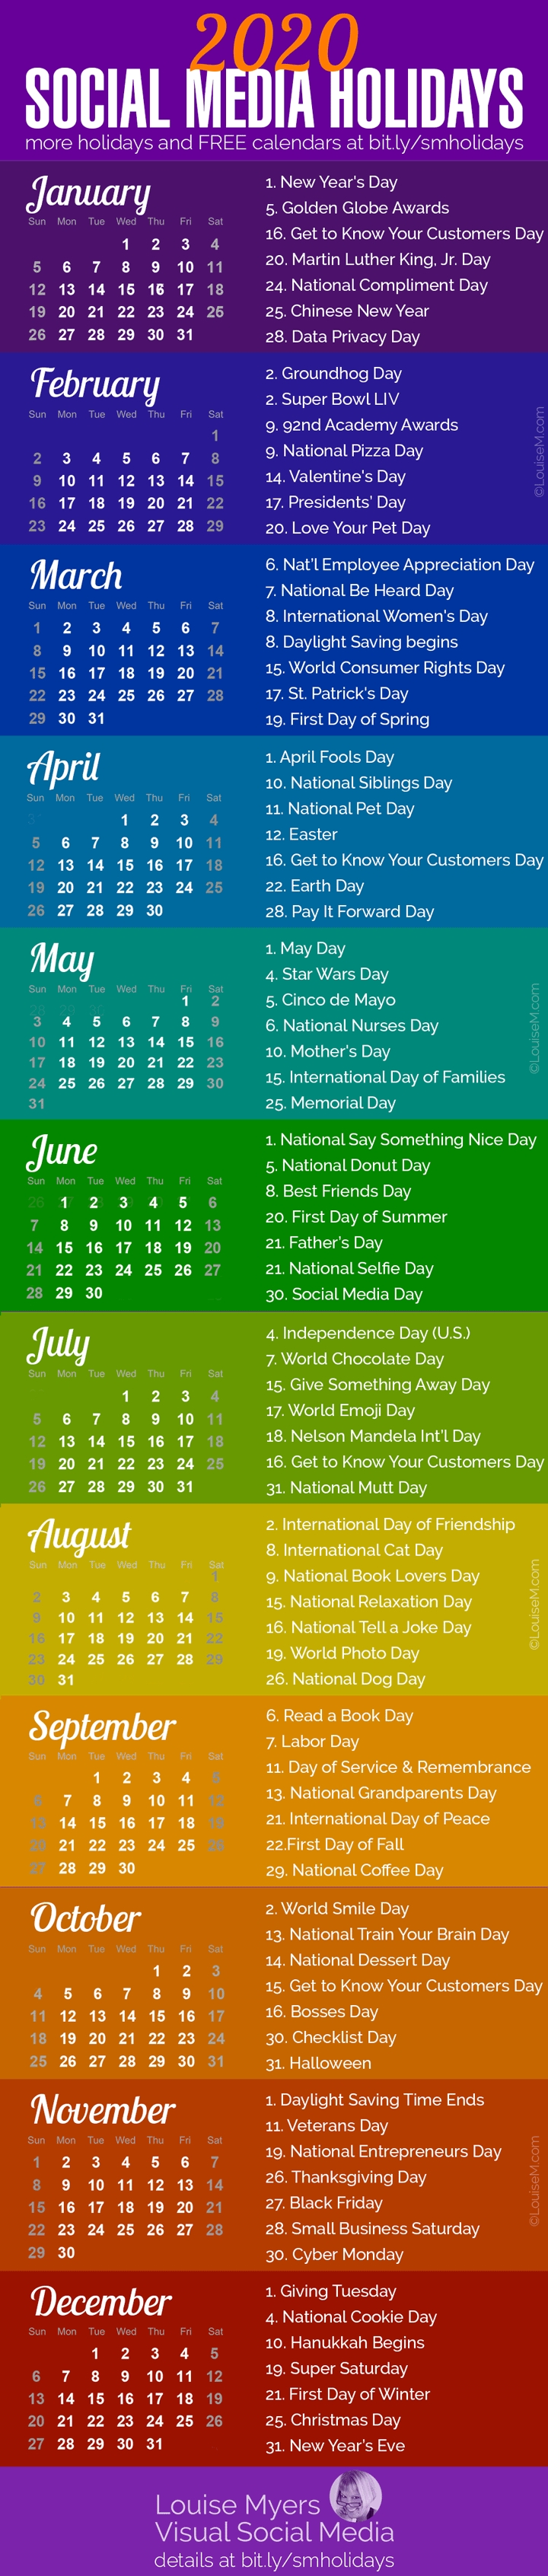 84 Social Media Holidays You Need In 2020: Indispensable! regarding Special Days In The Business Calendar 2020